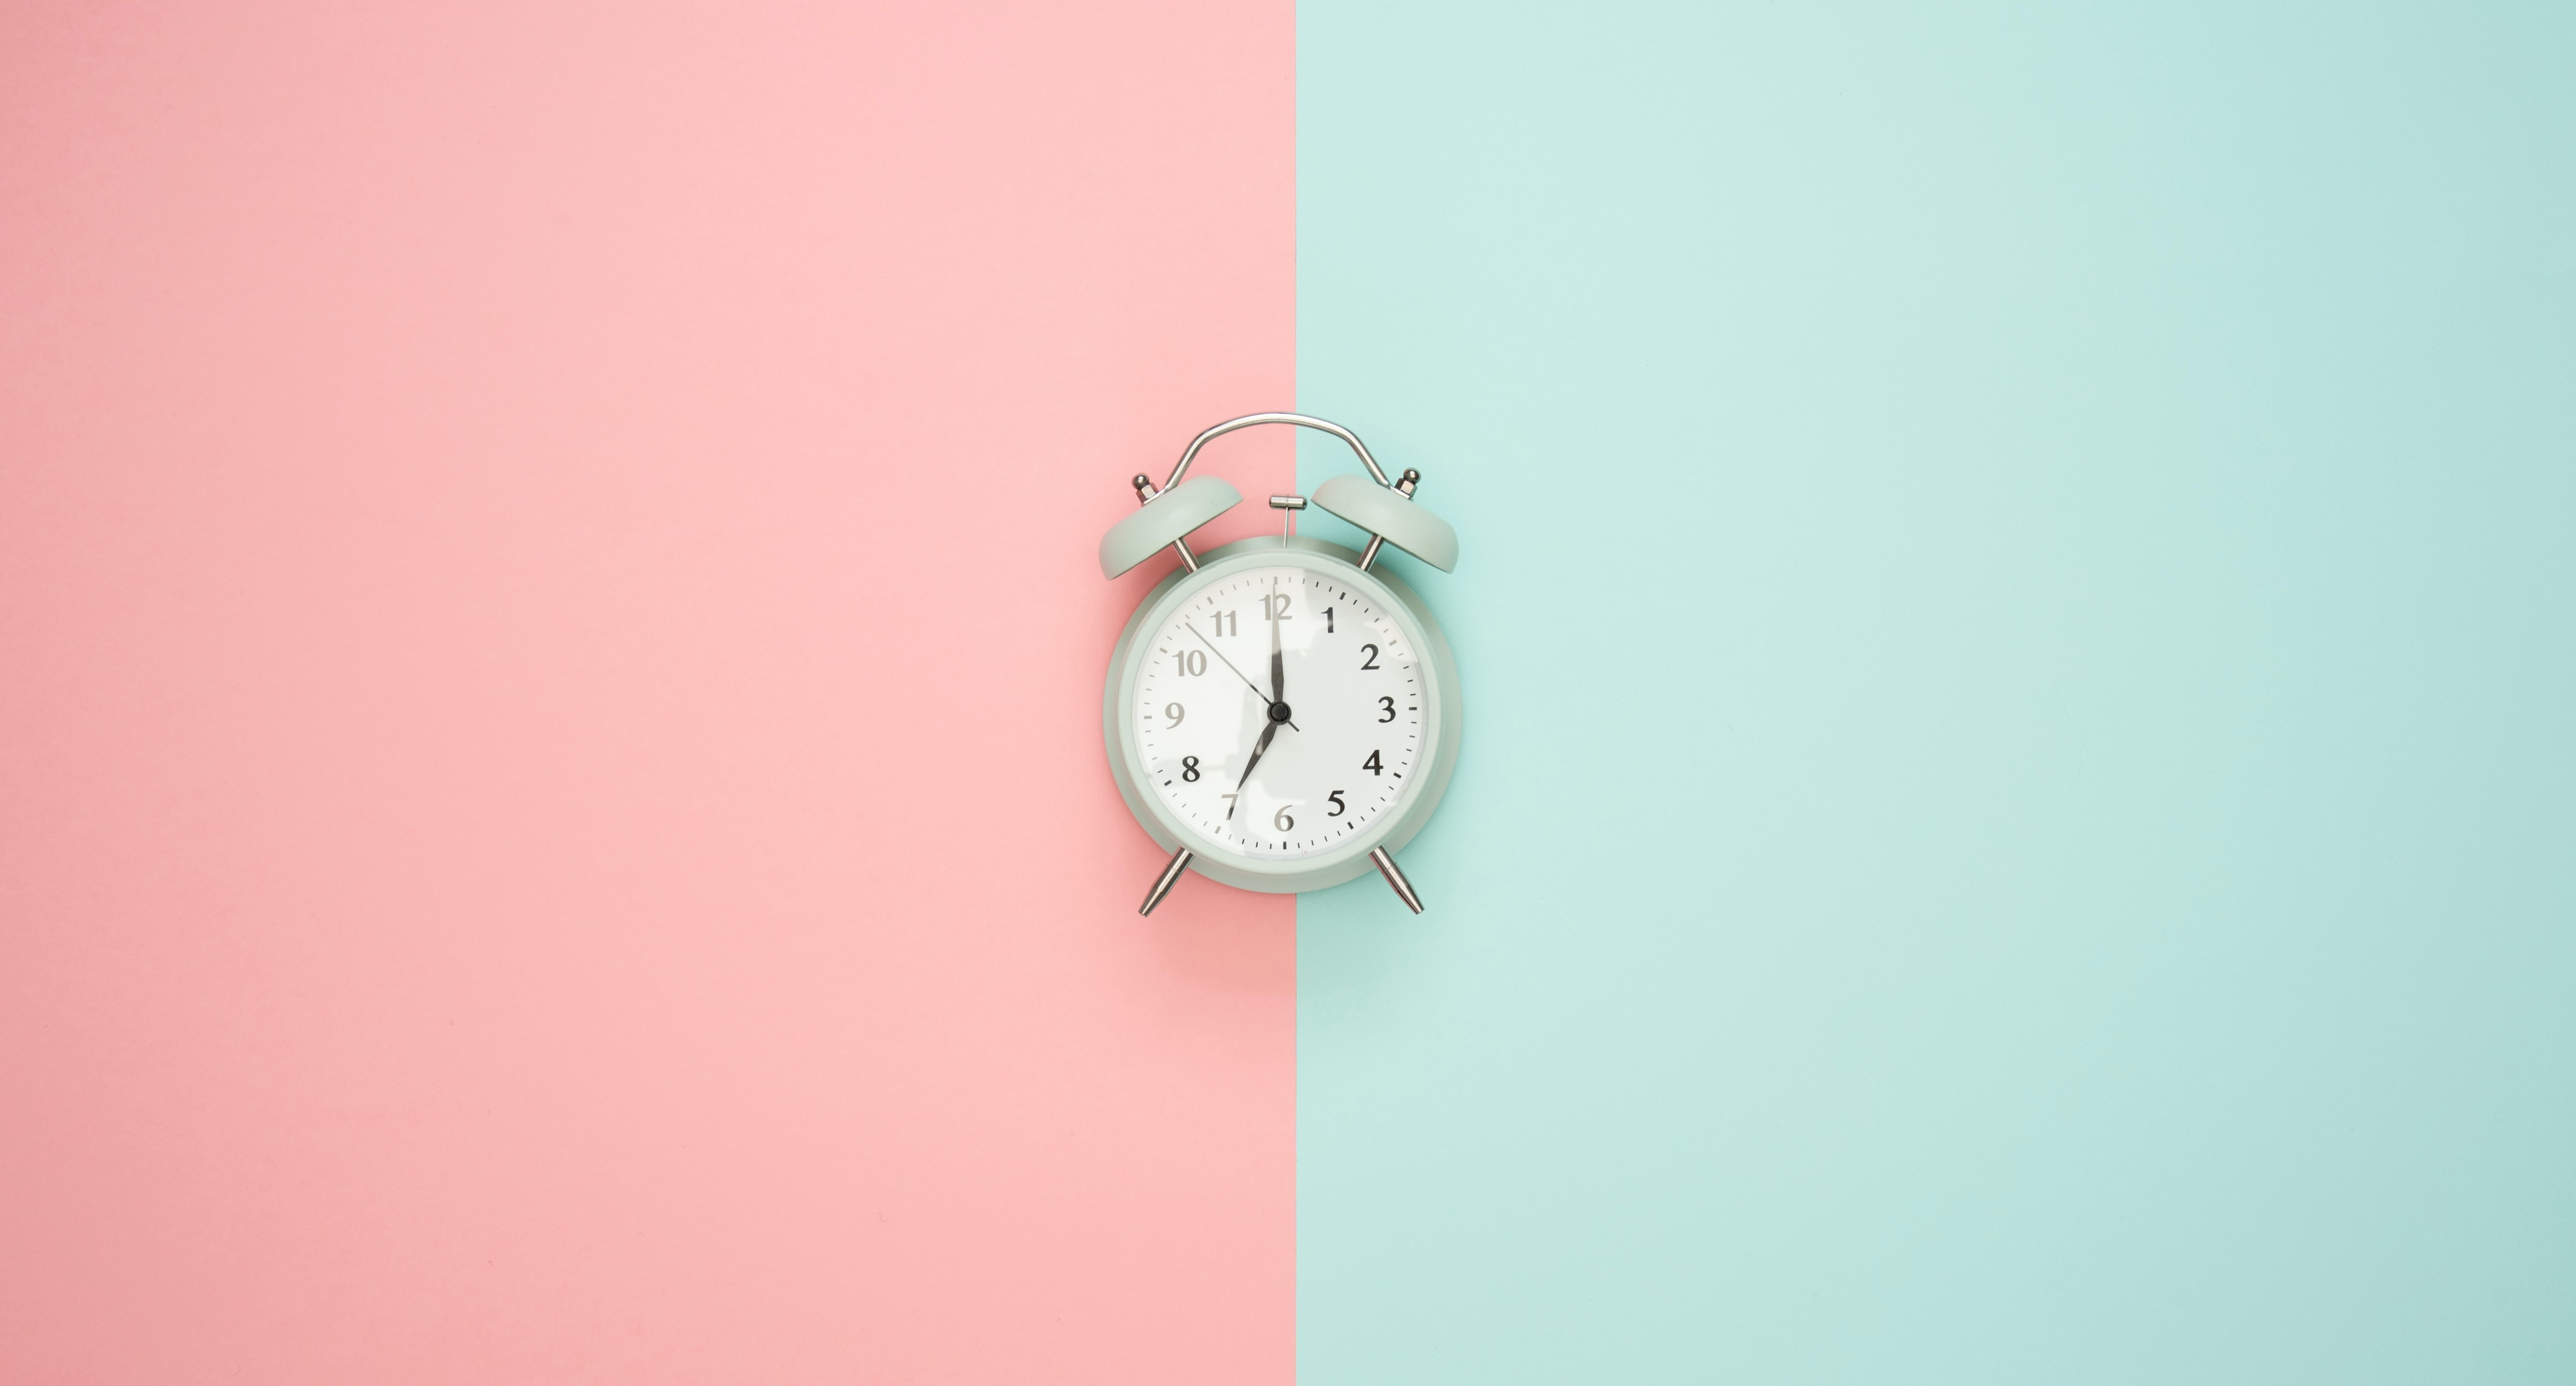 Clock on pink and green background